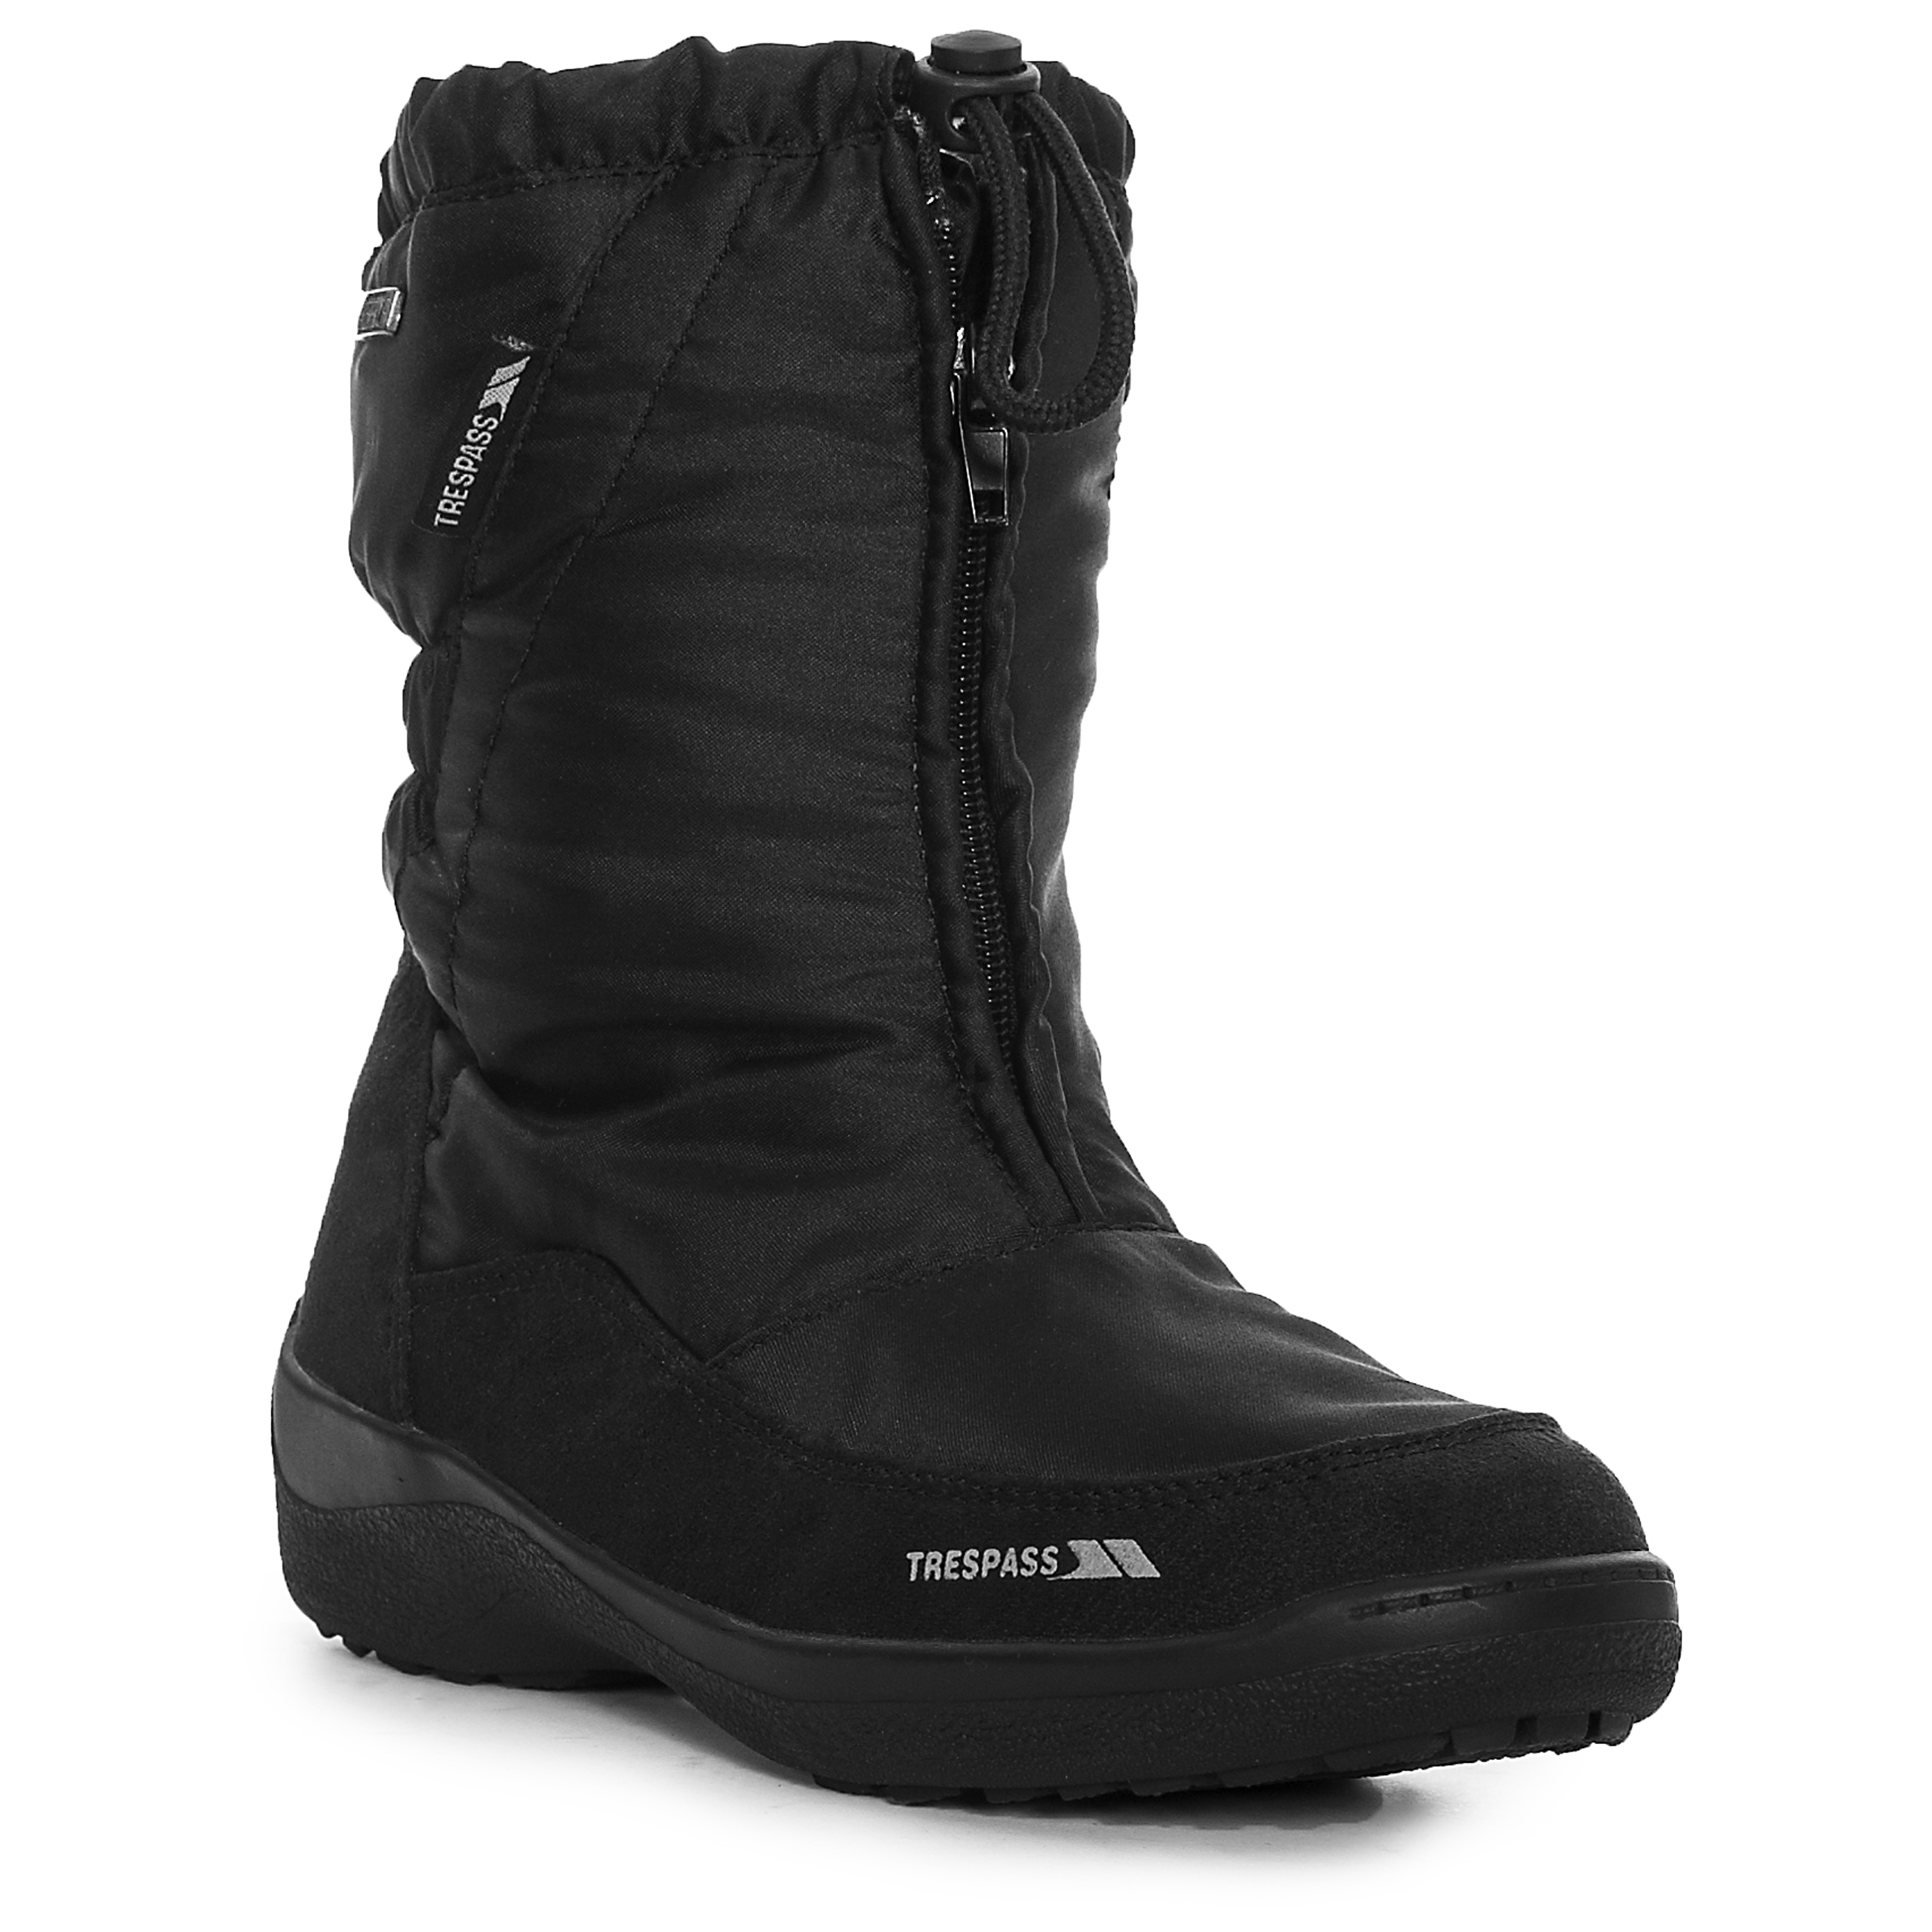 Waterproof Snow Boots For Women | Santa Barbara Institute for ...